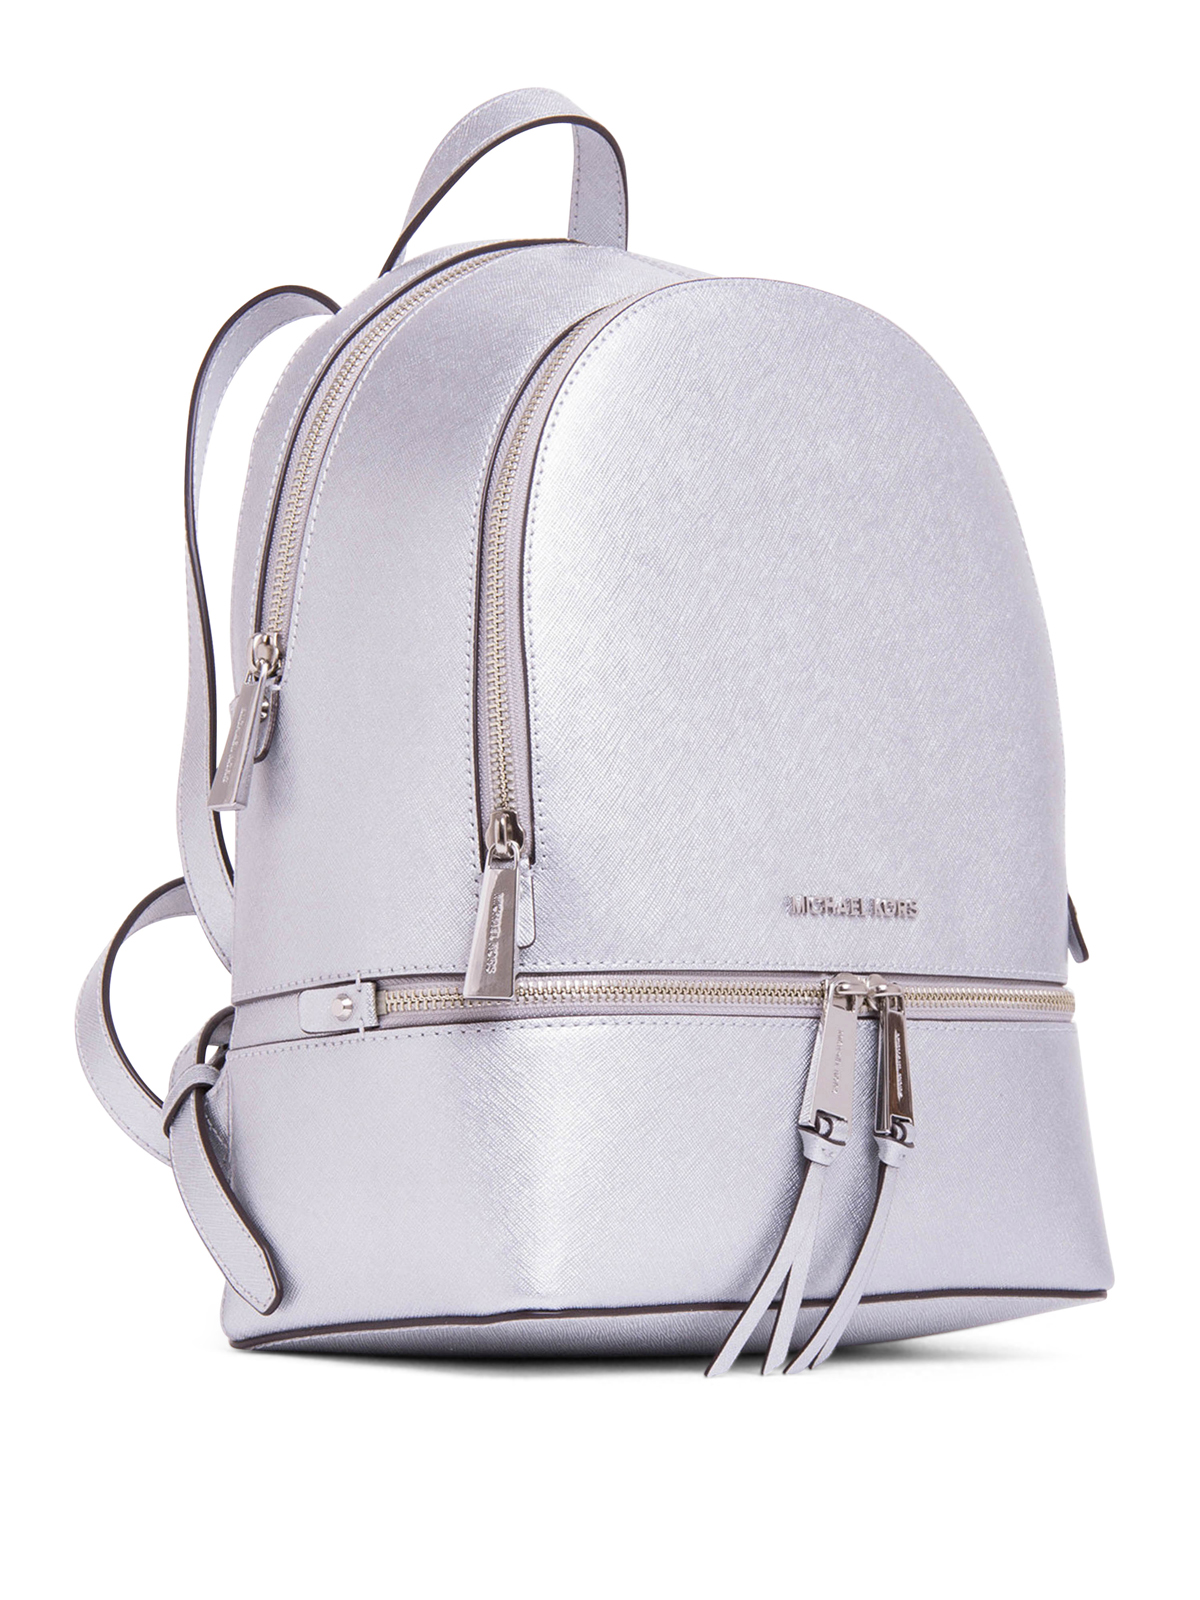 metallic saffiano rhea backpack by michael kors. Black Bedroom Furniture Sets. Home Design Ideas